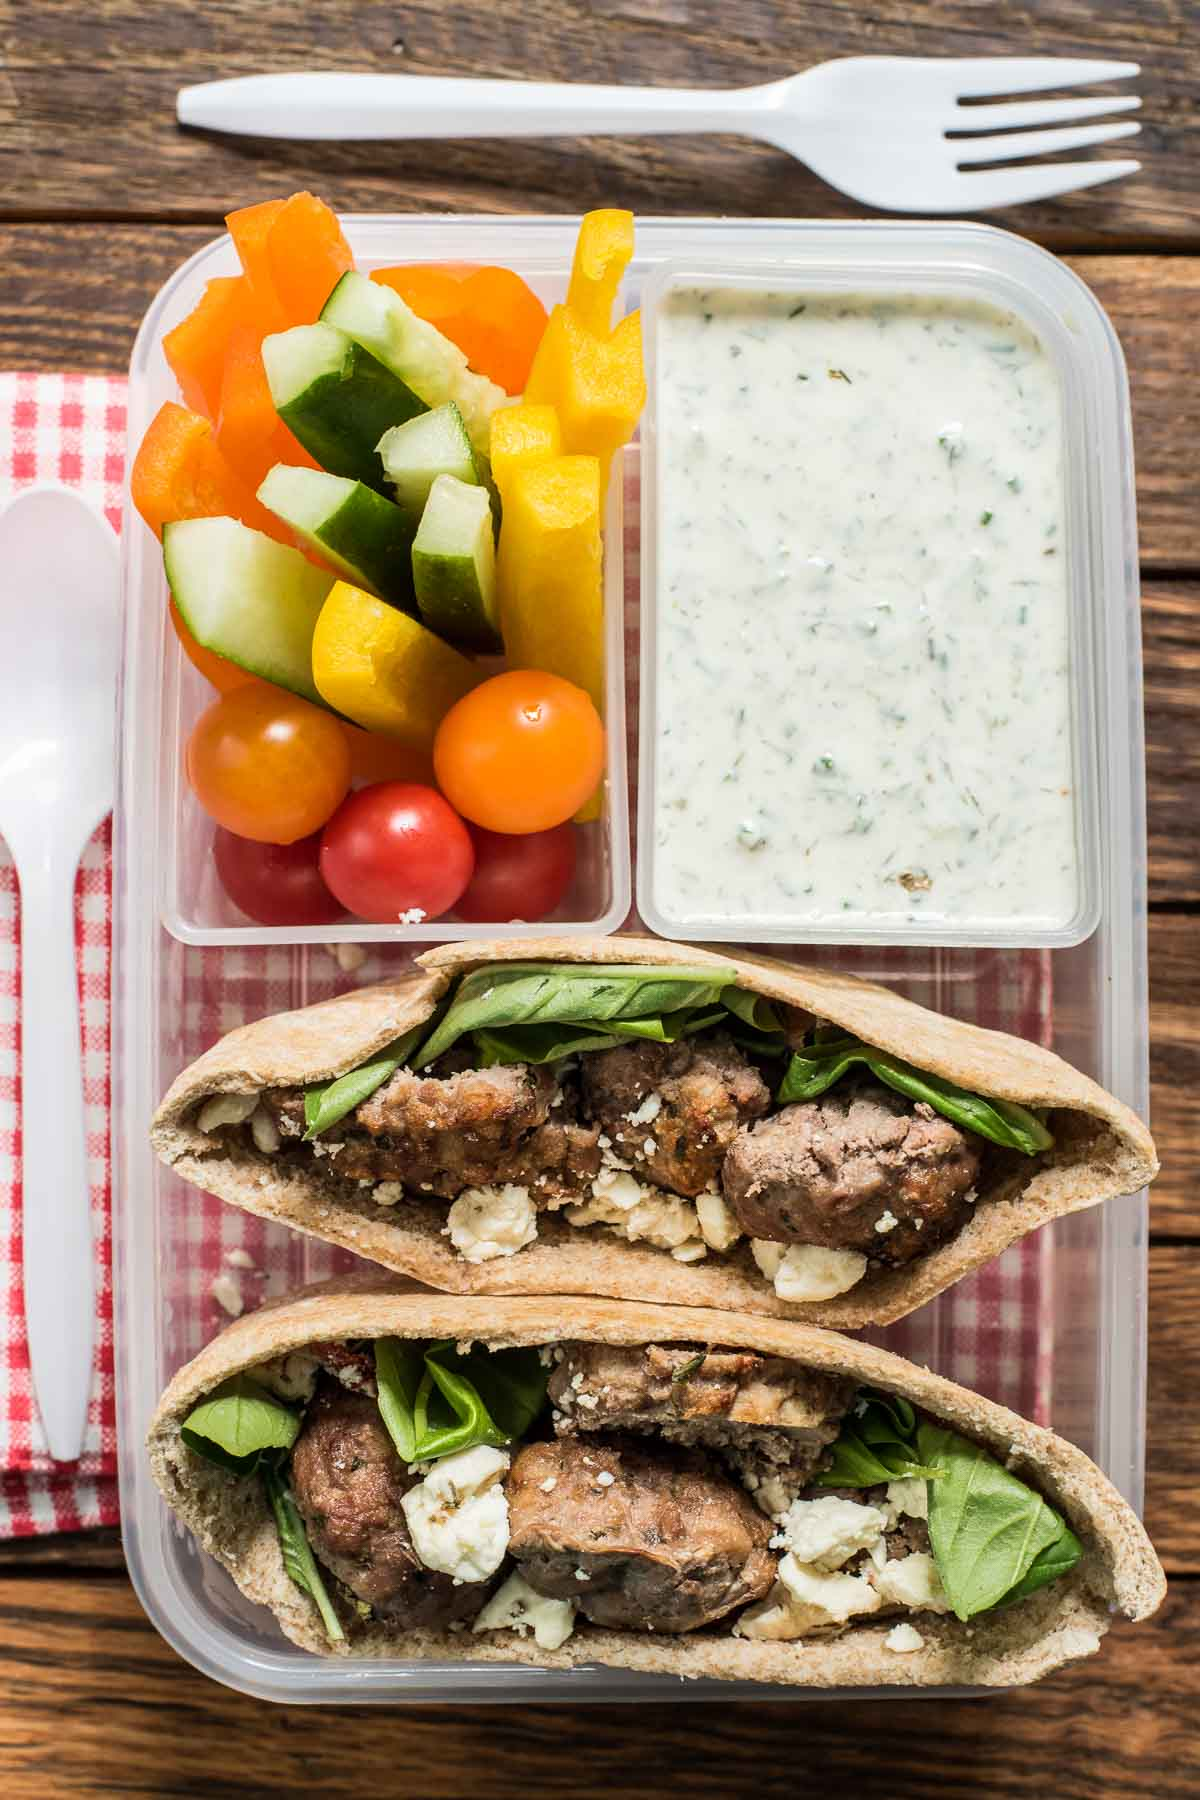 This Mediterranean Meatball Pita Sandwich is perfect for back to school lunches and weeknight dinners!